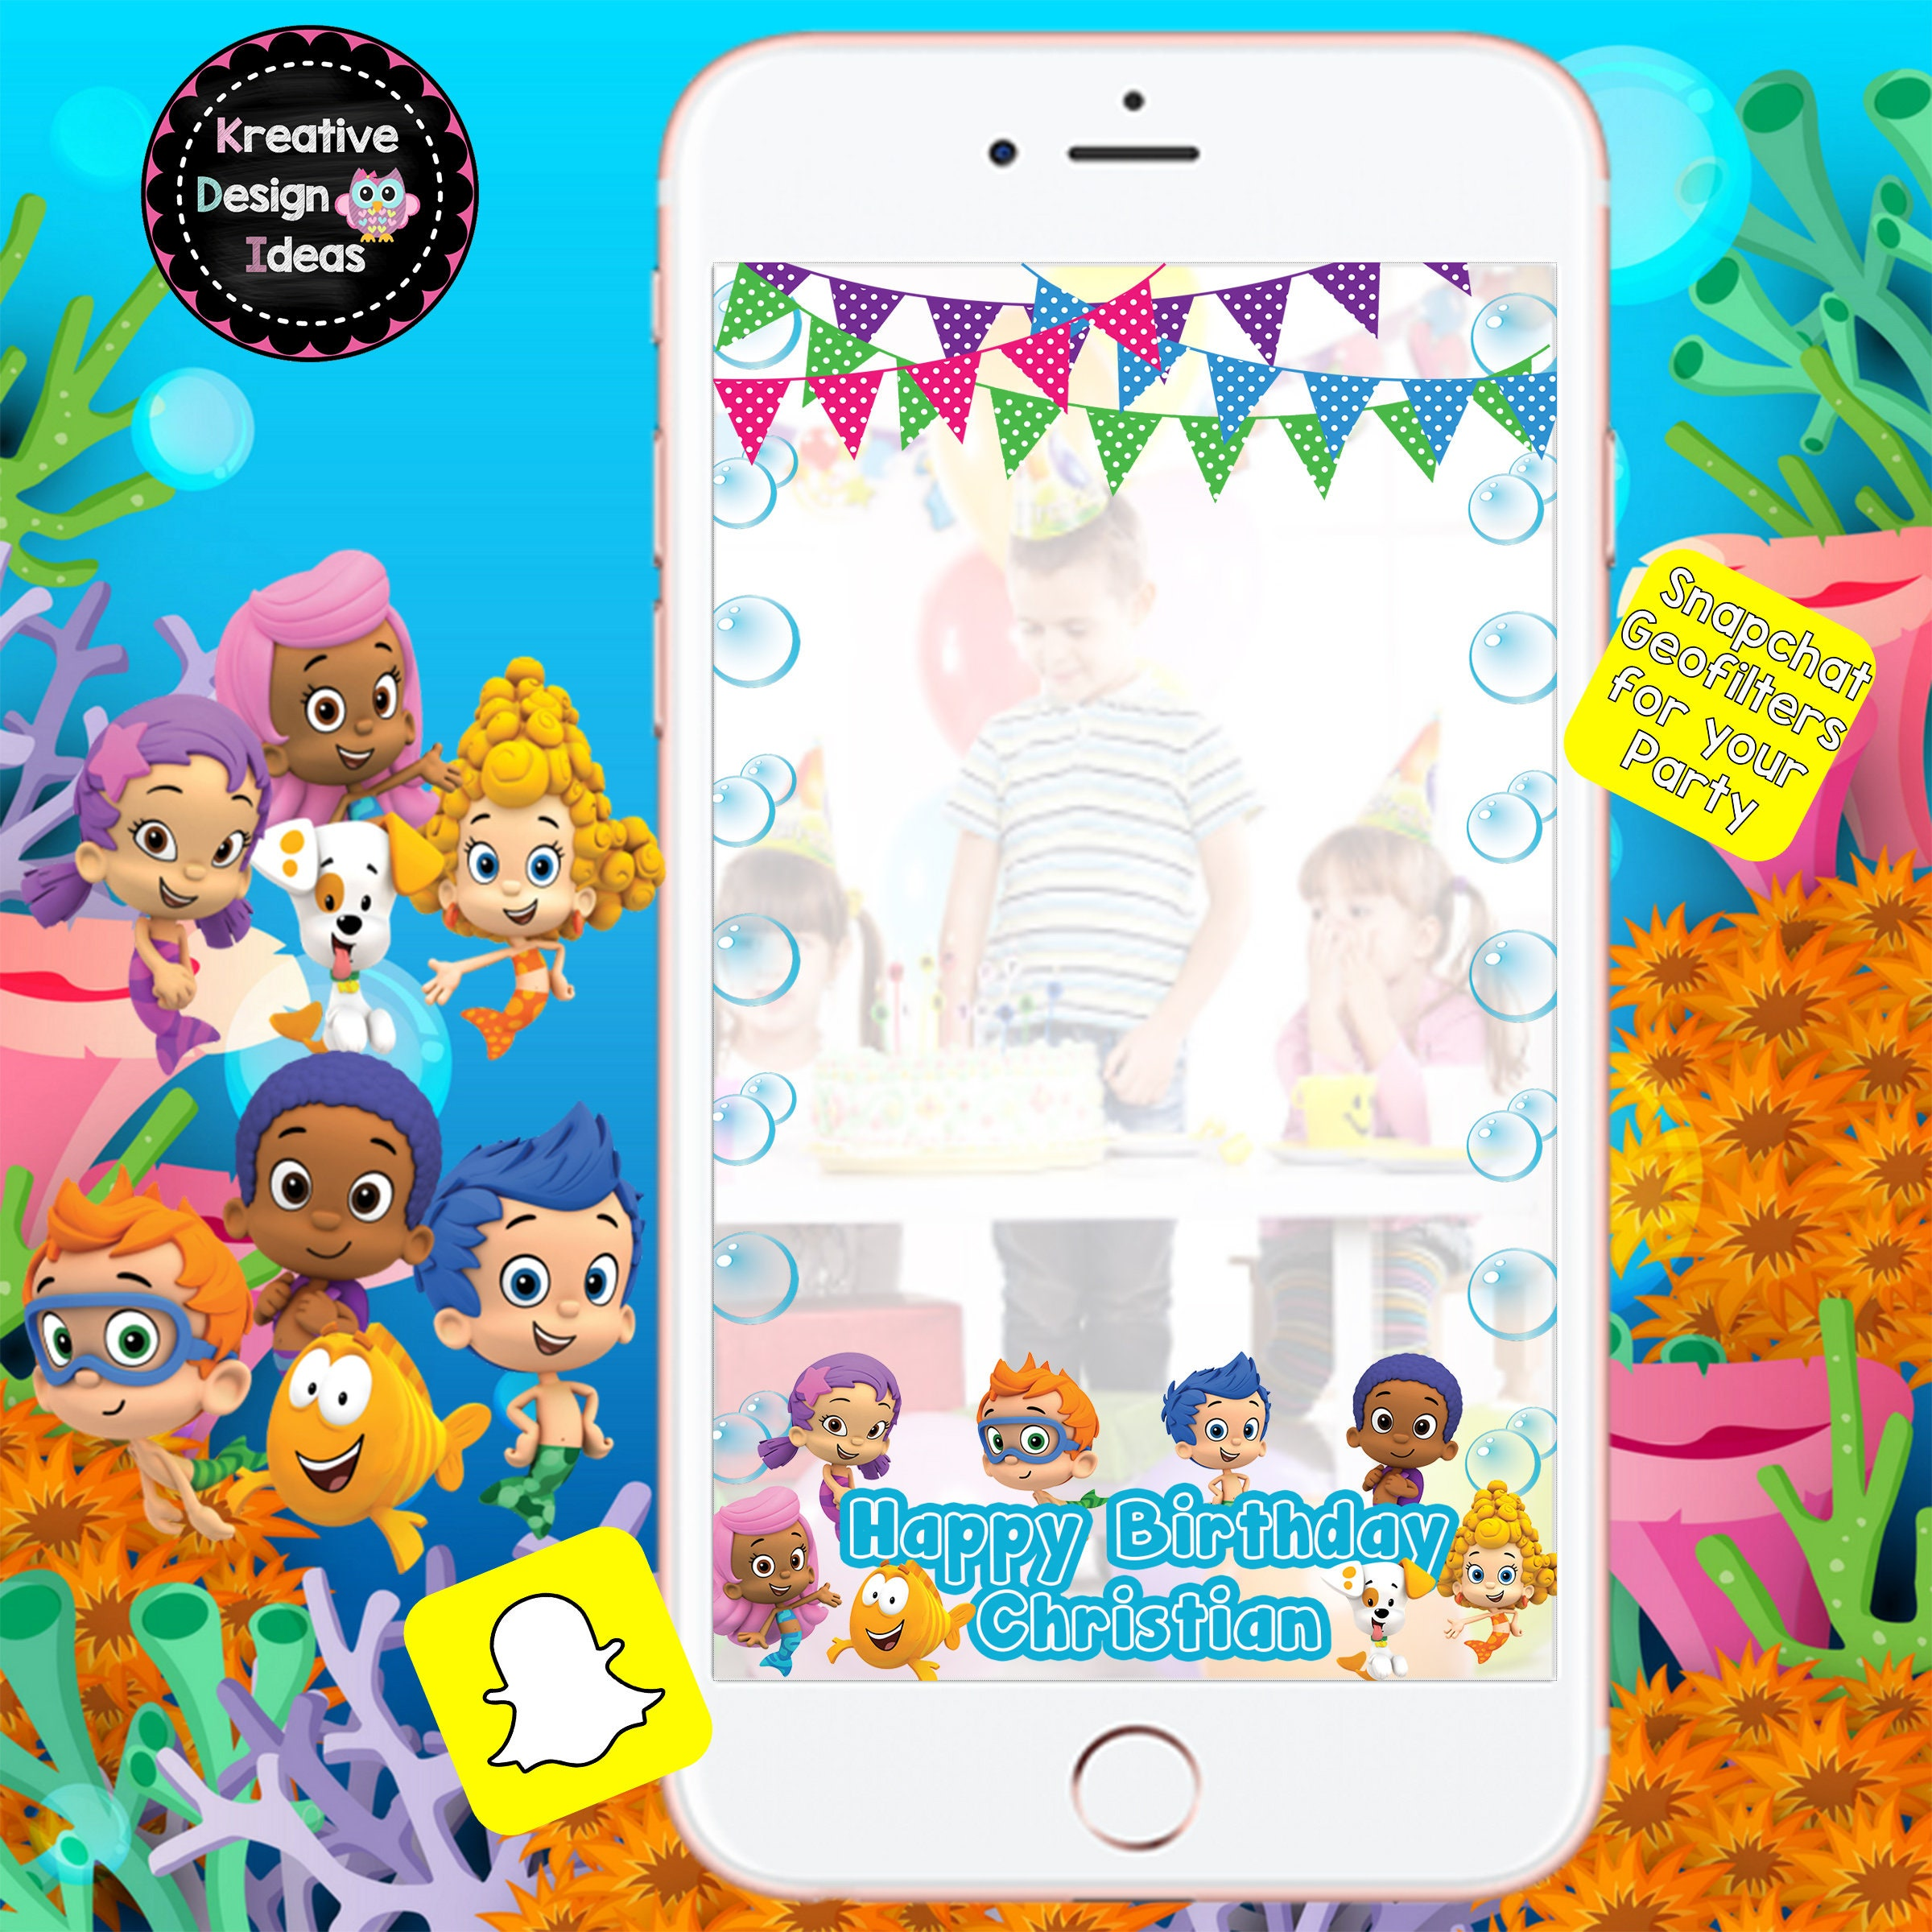 Bubble Guppies Snaptchat Filter Snapchat for Bubble Guppies | Etsy